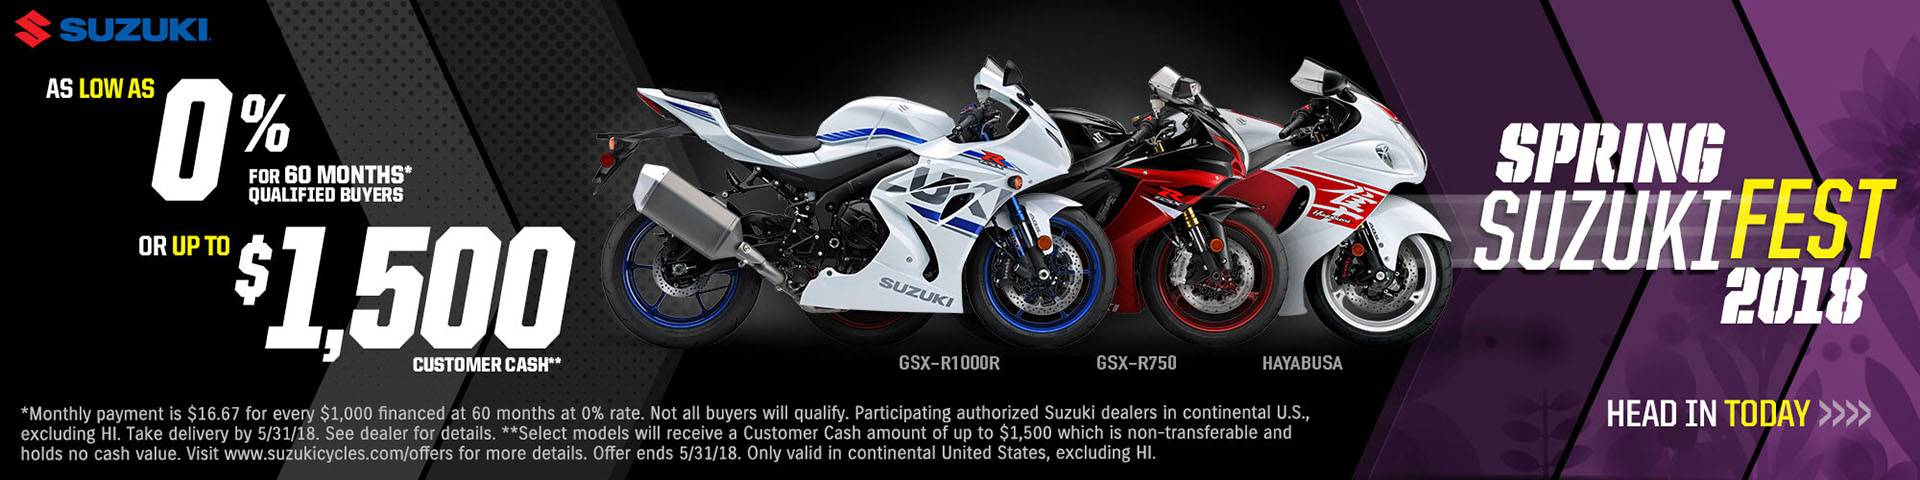 Suzuki Motor of America Inc. Suzuki - Spring Suzuki Fest for Sportbike and Standard